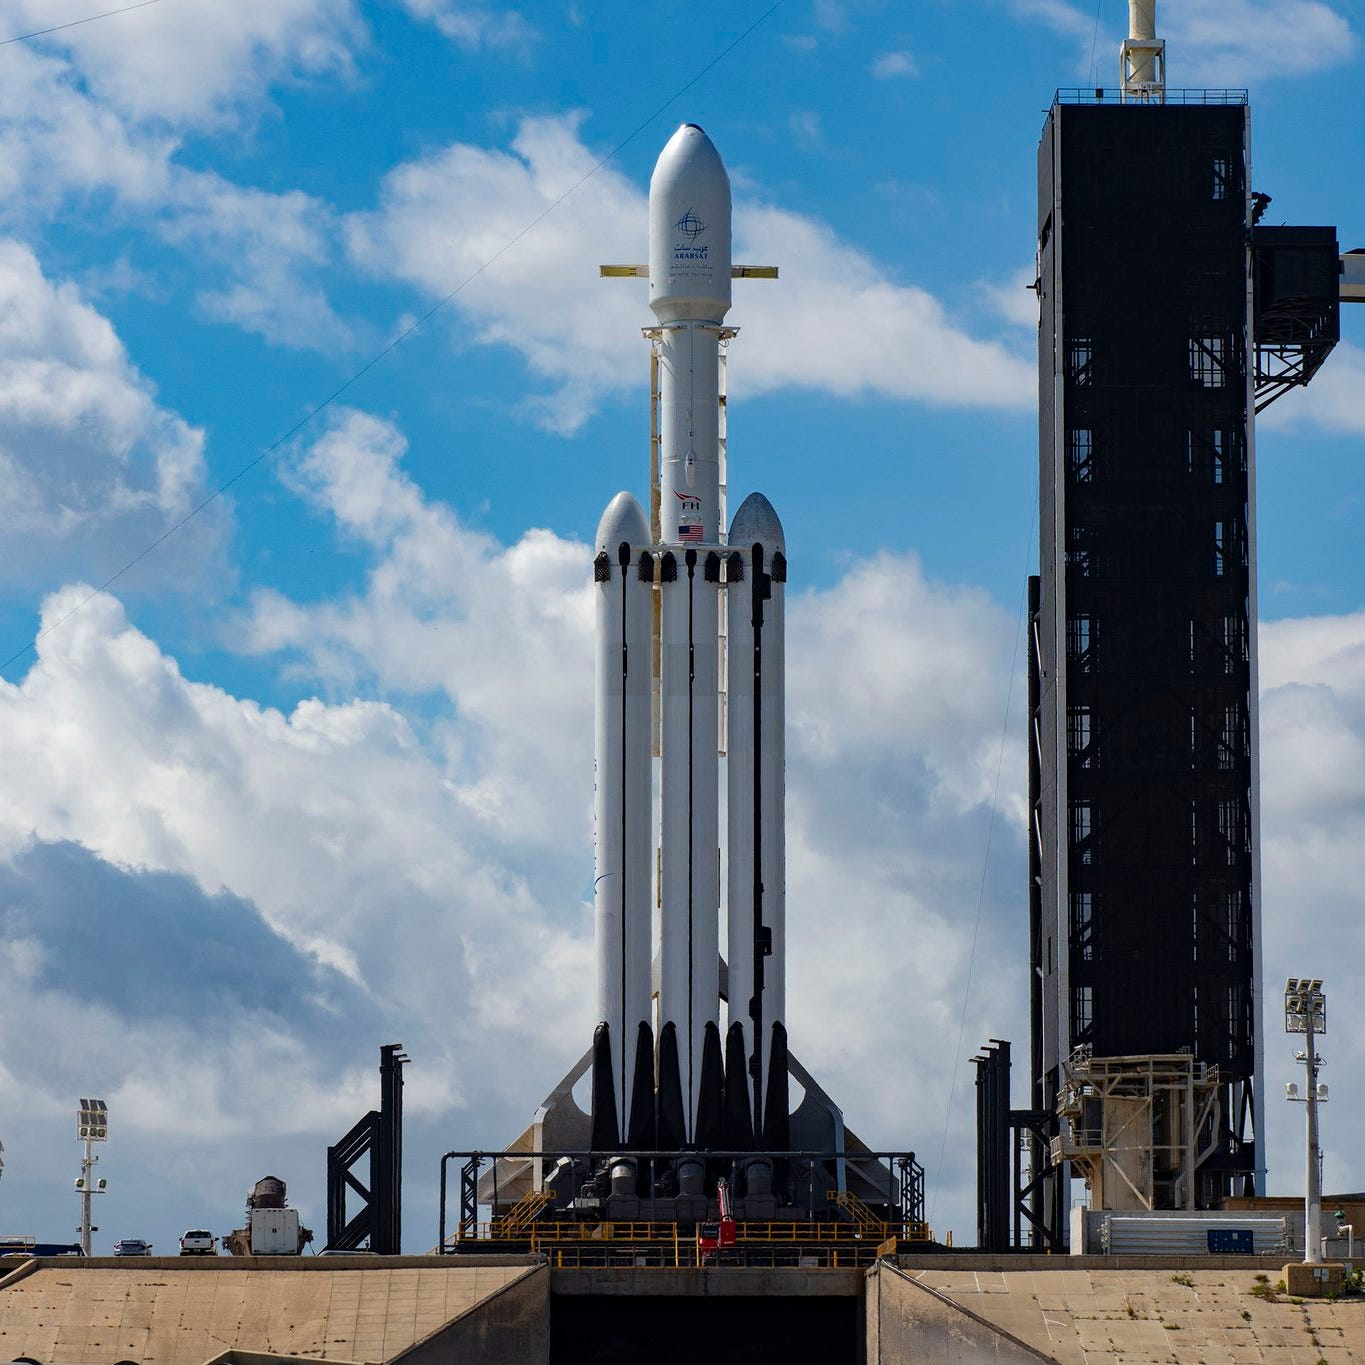 It's launch day! SpaceX Falcon Heavy rocket launch details